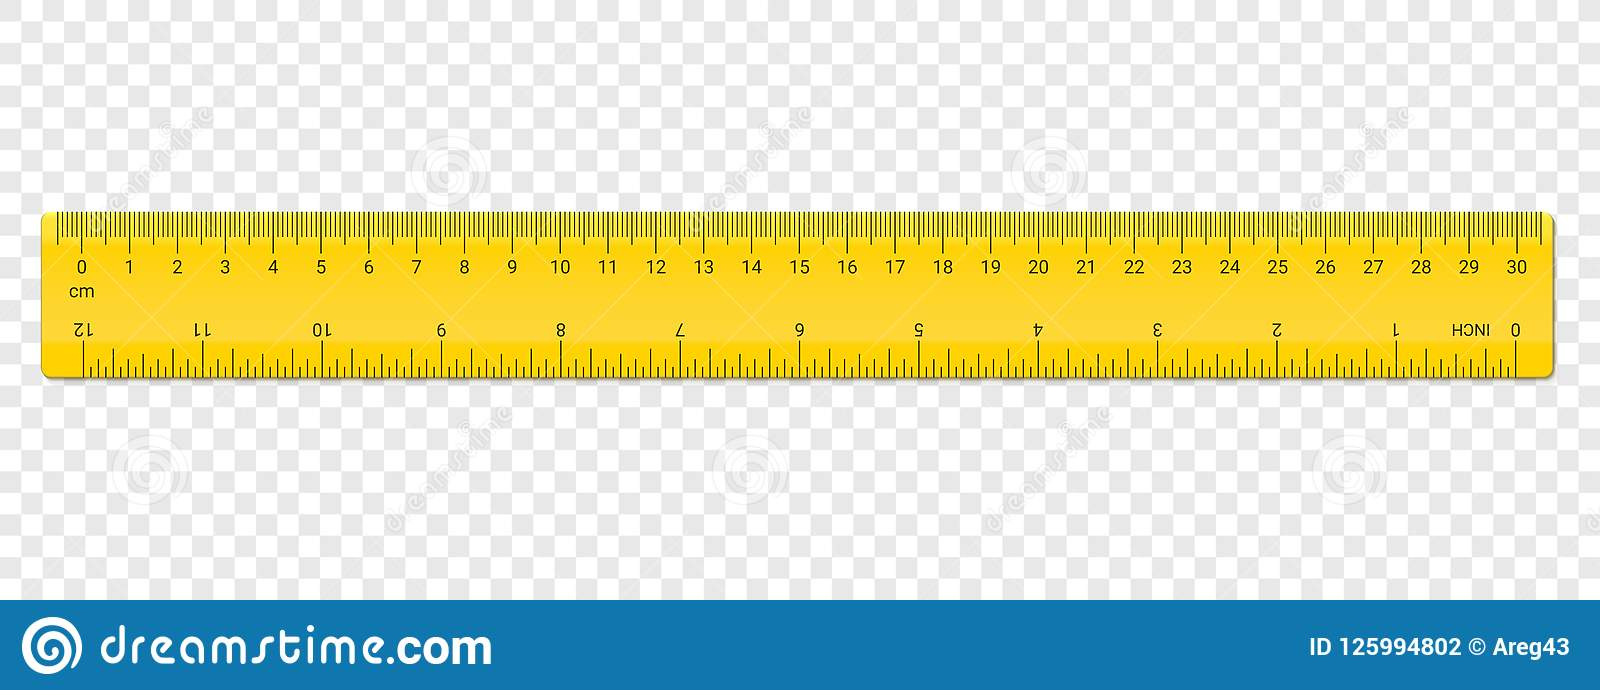 Ruler Inches And Cm Scale On Both Sides Vector School Plastic Yellow Isolated Rulers With Inch And Centimeters Double Side Measurement